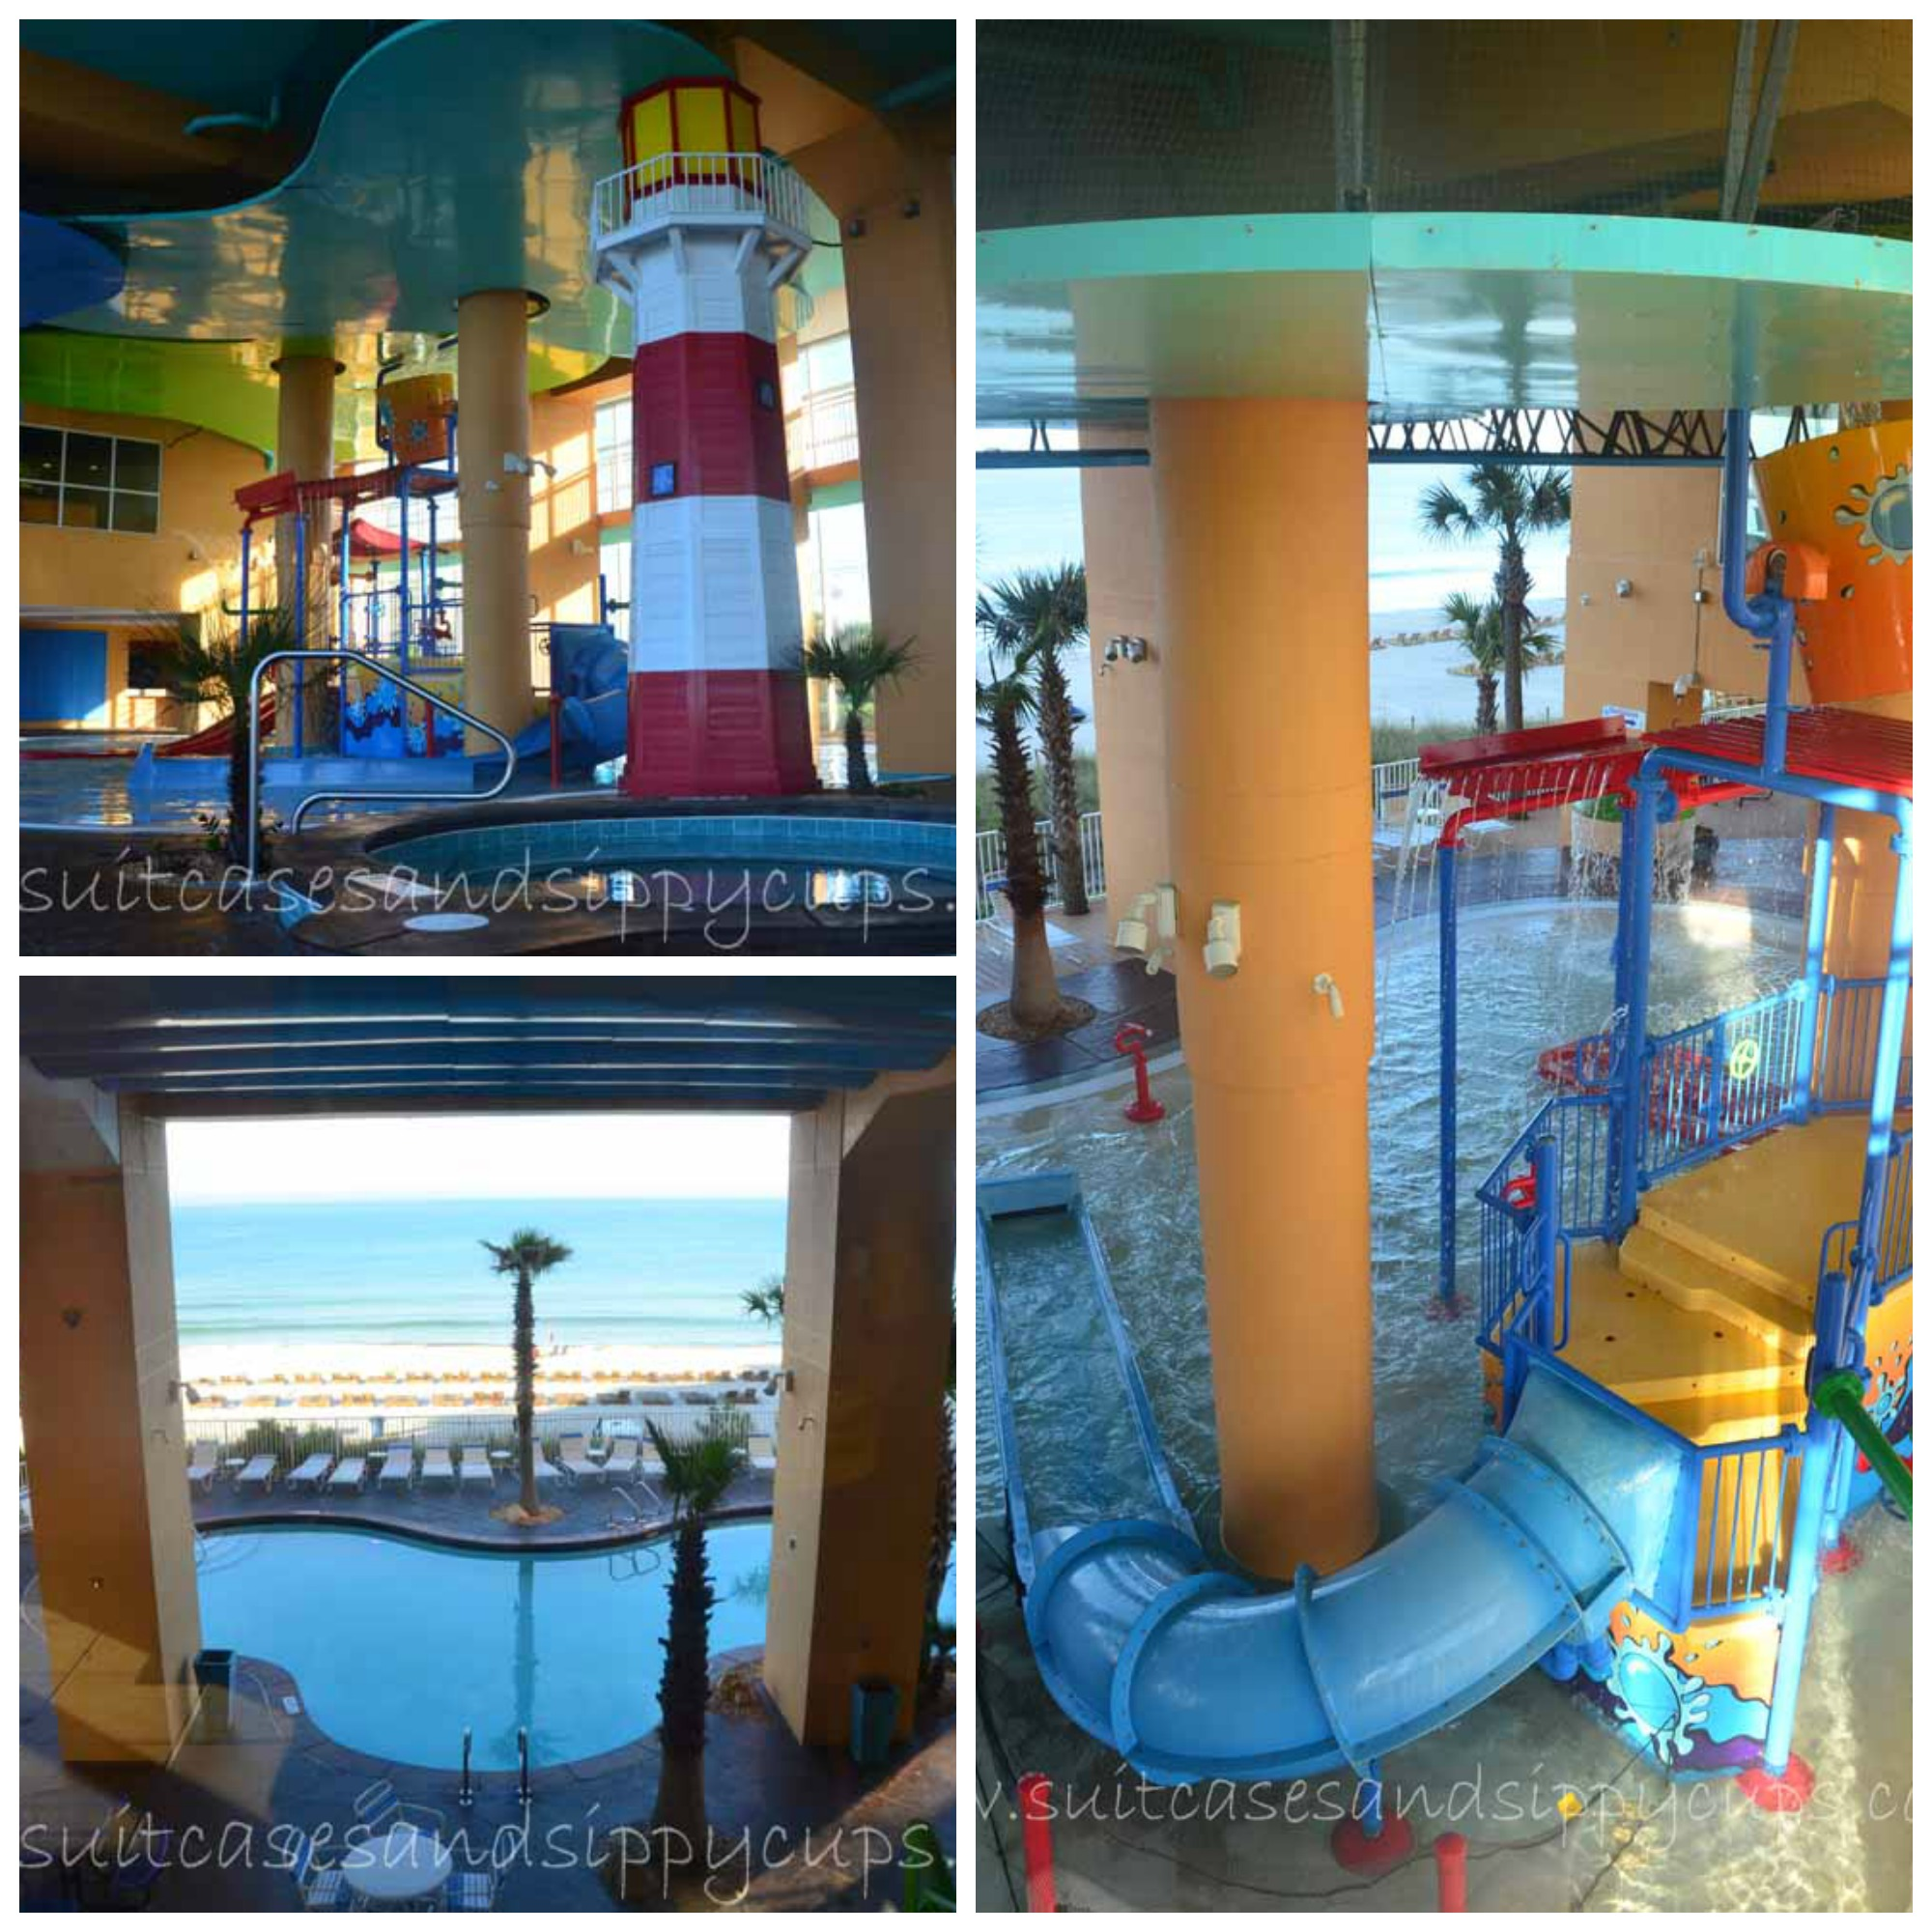 Water Features At Splash Resort